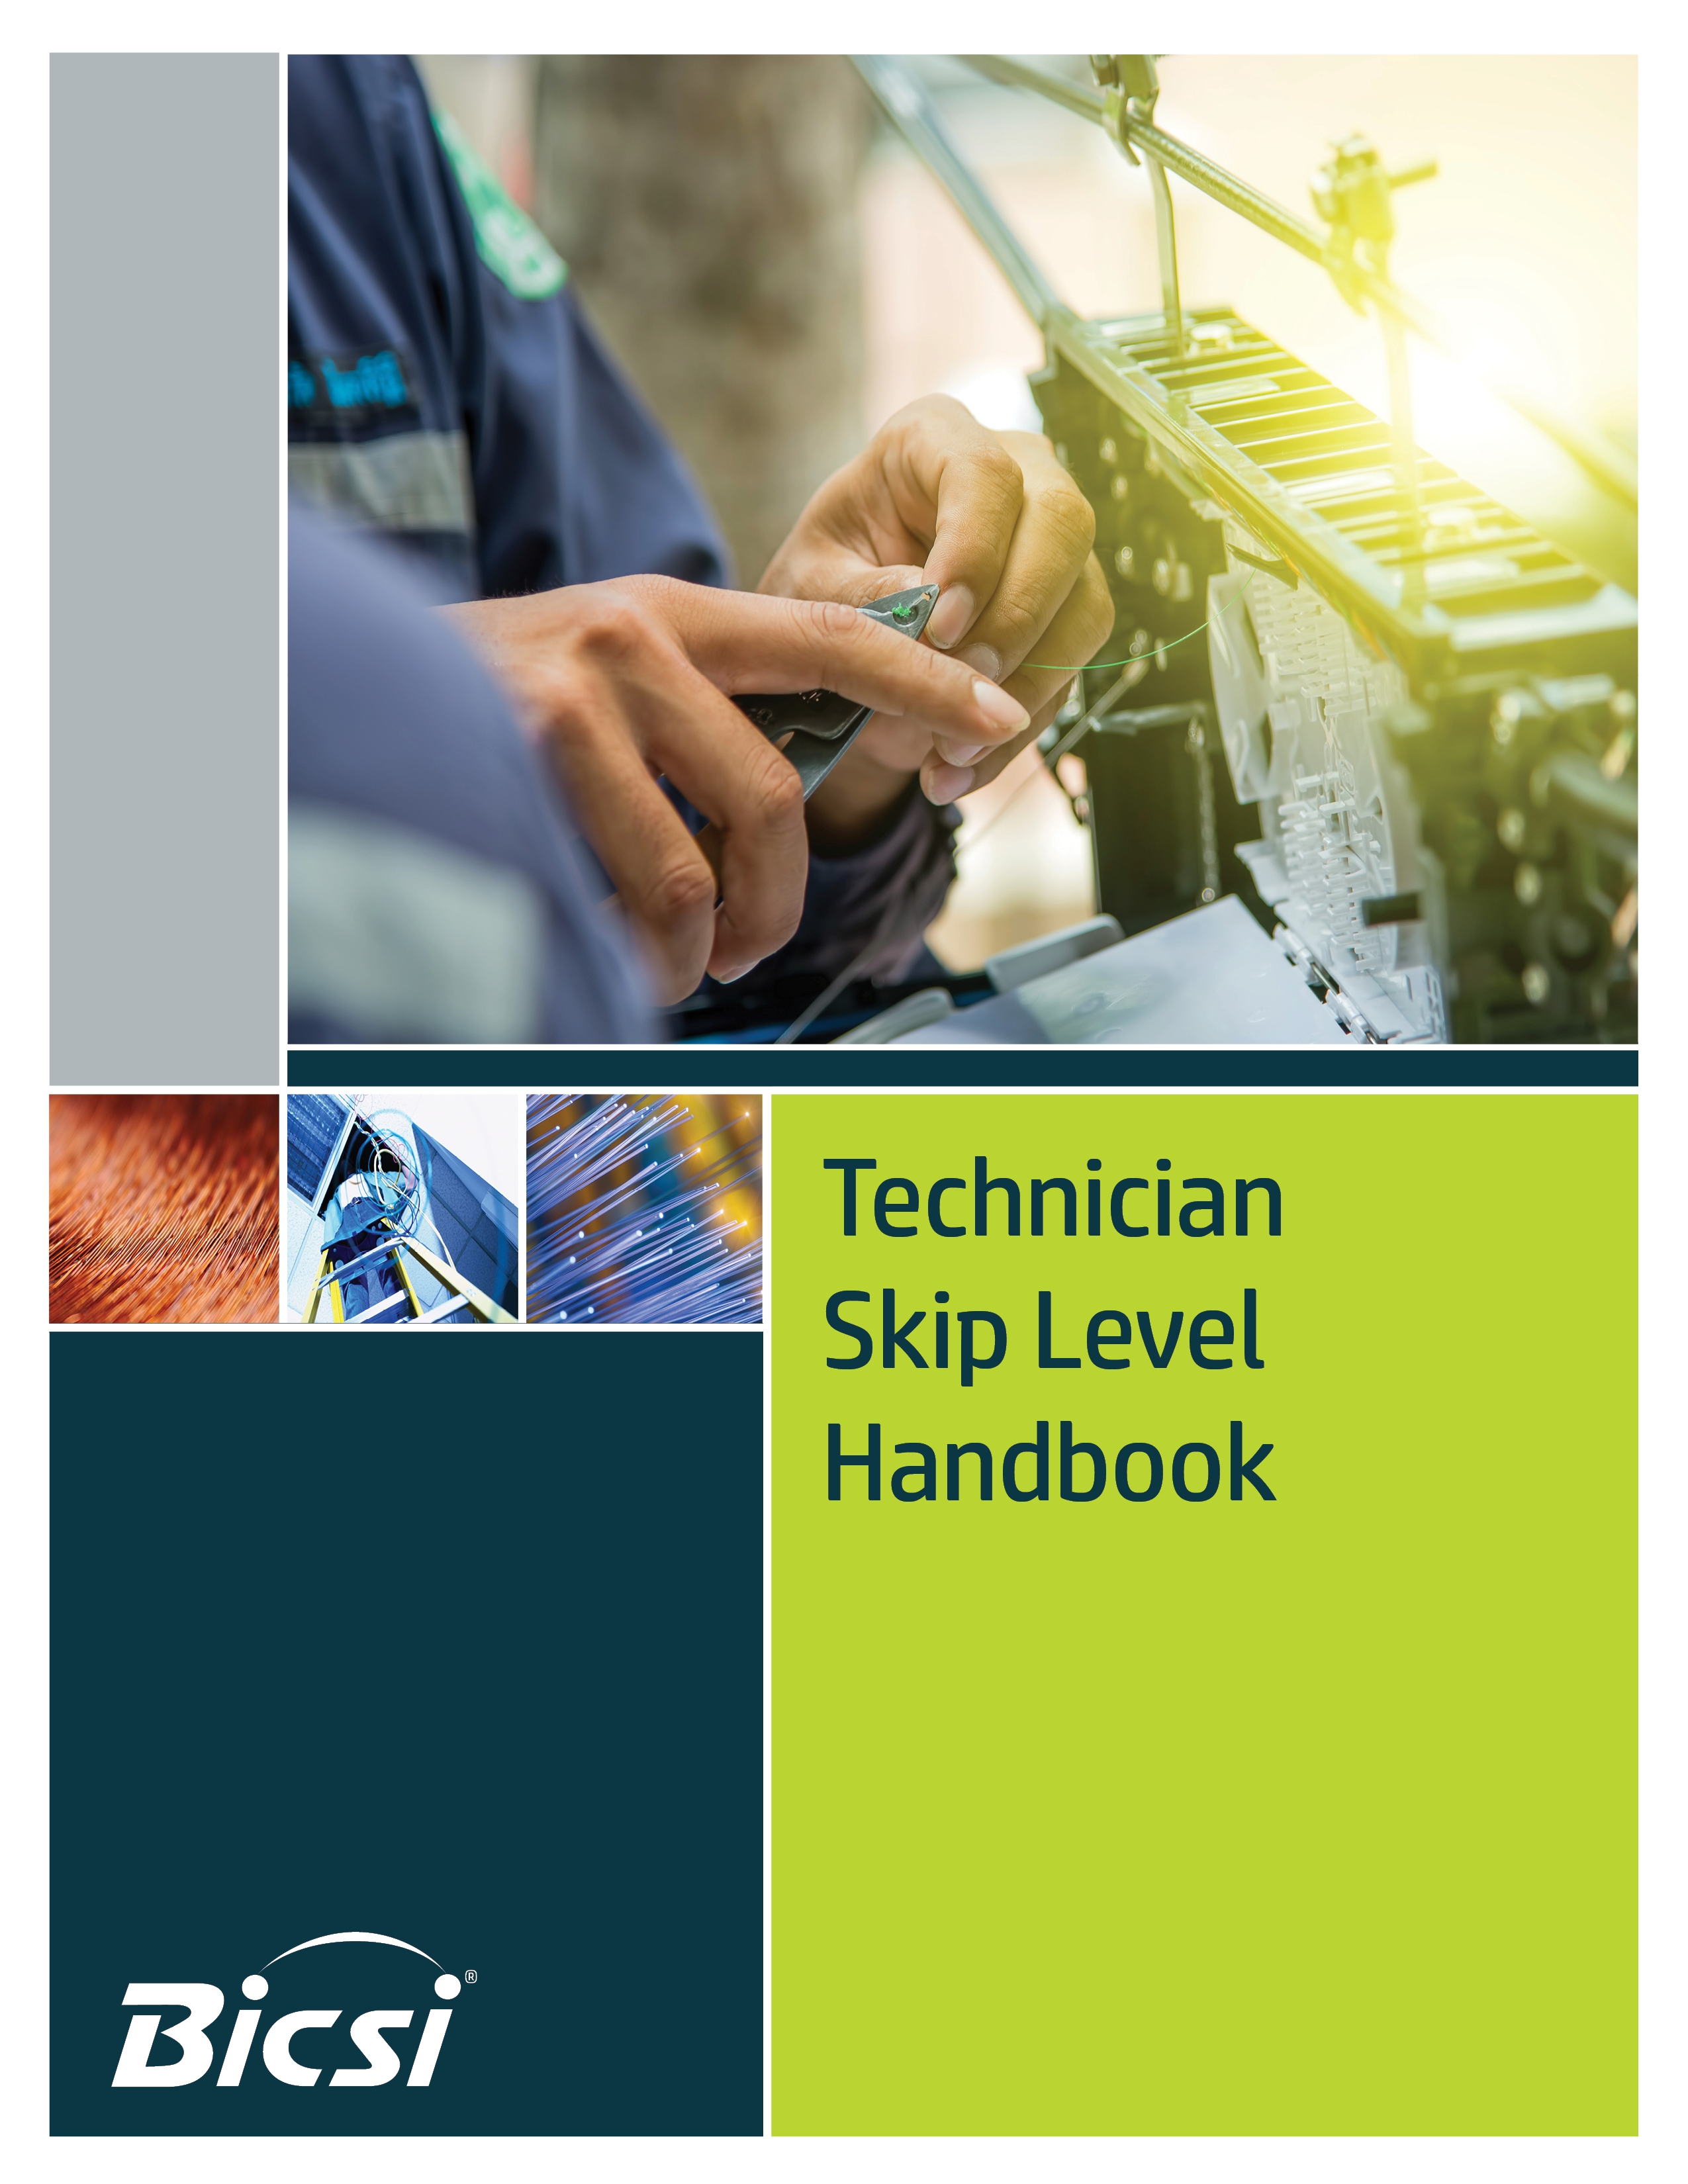 20.11.12_Technician_Skip_Level_Exam_App cover